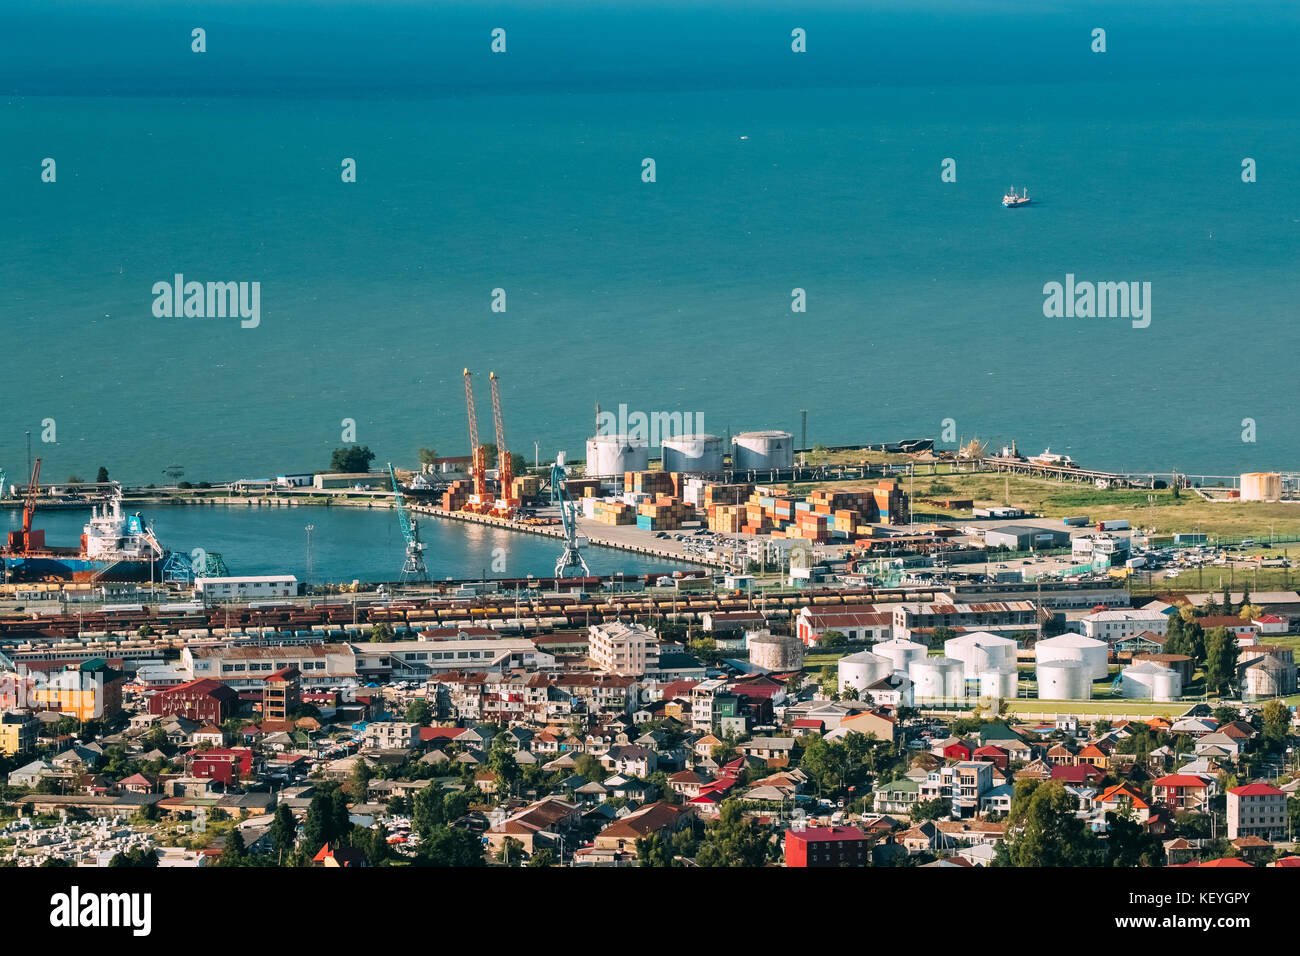 Batumi, Adjara, Georgia. Aerial View Of Black Sea, Port And Fuel Storage In Sunny Summer Day - Stock Image